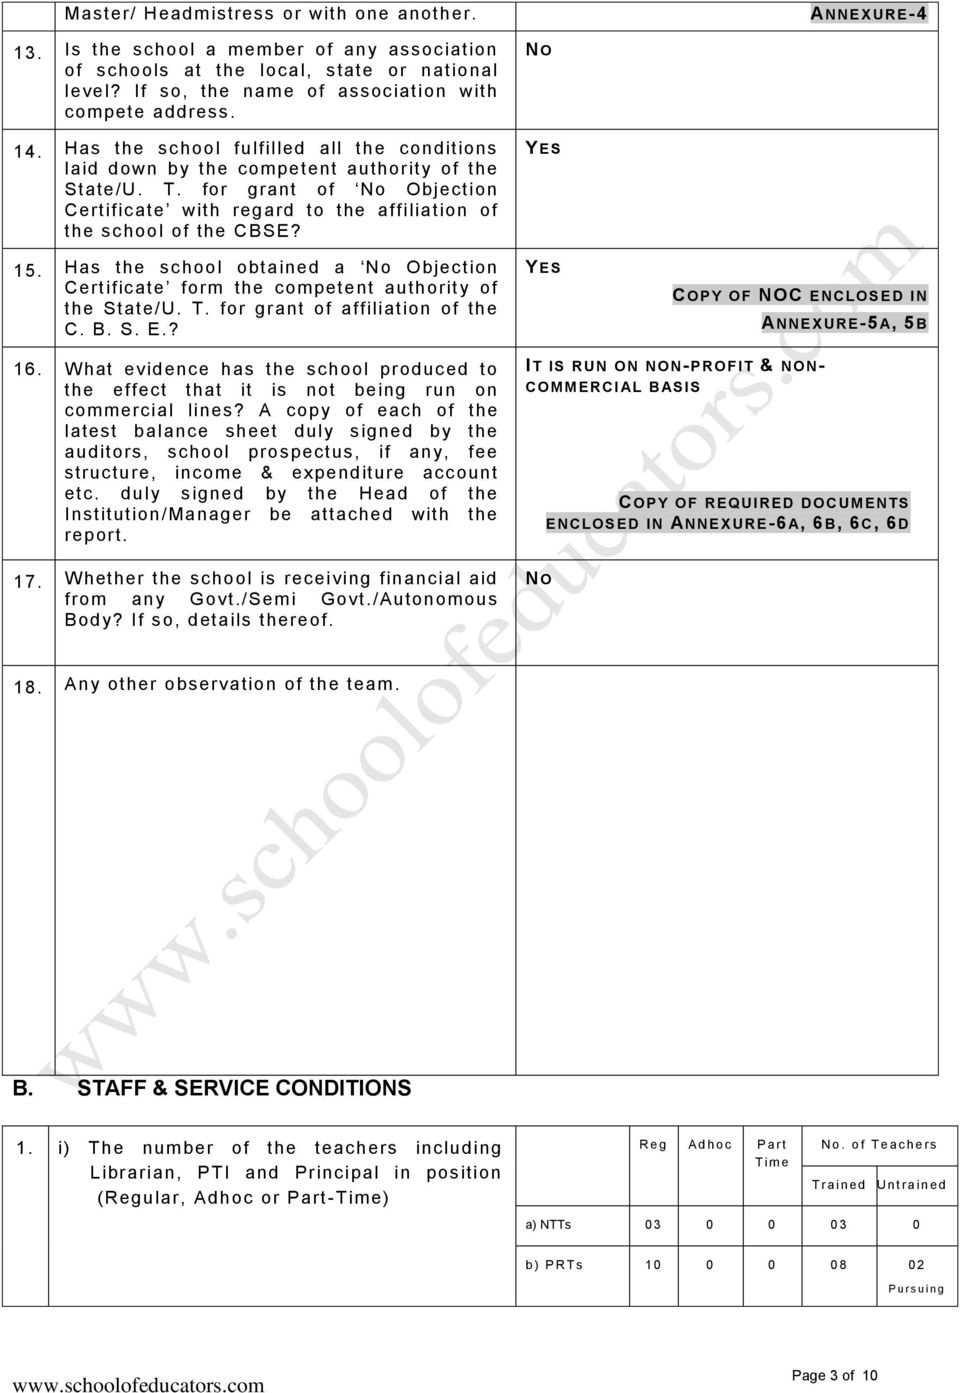 INSPECTION REPORT PROFORMA FOR - PDF